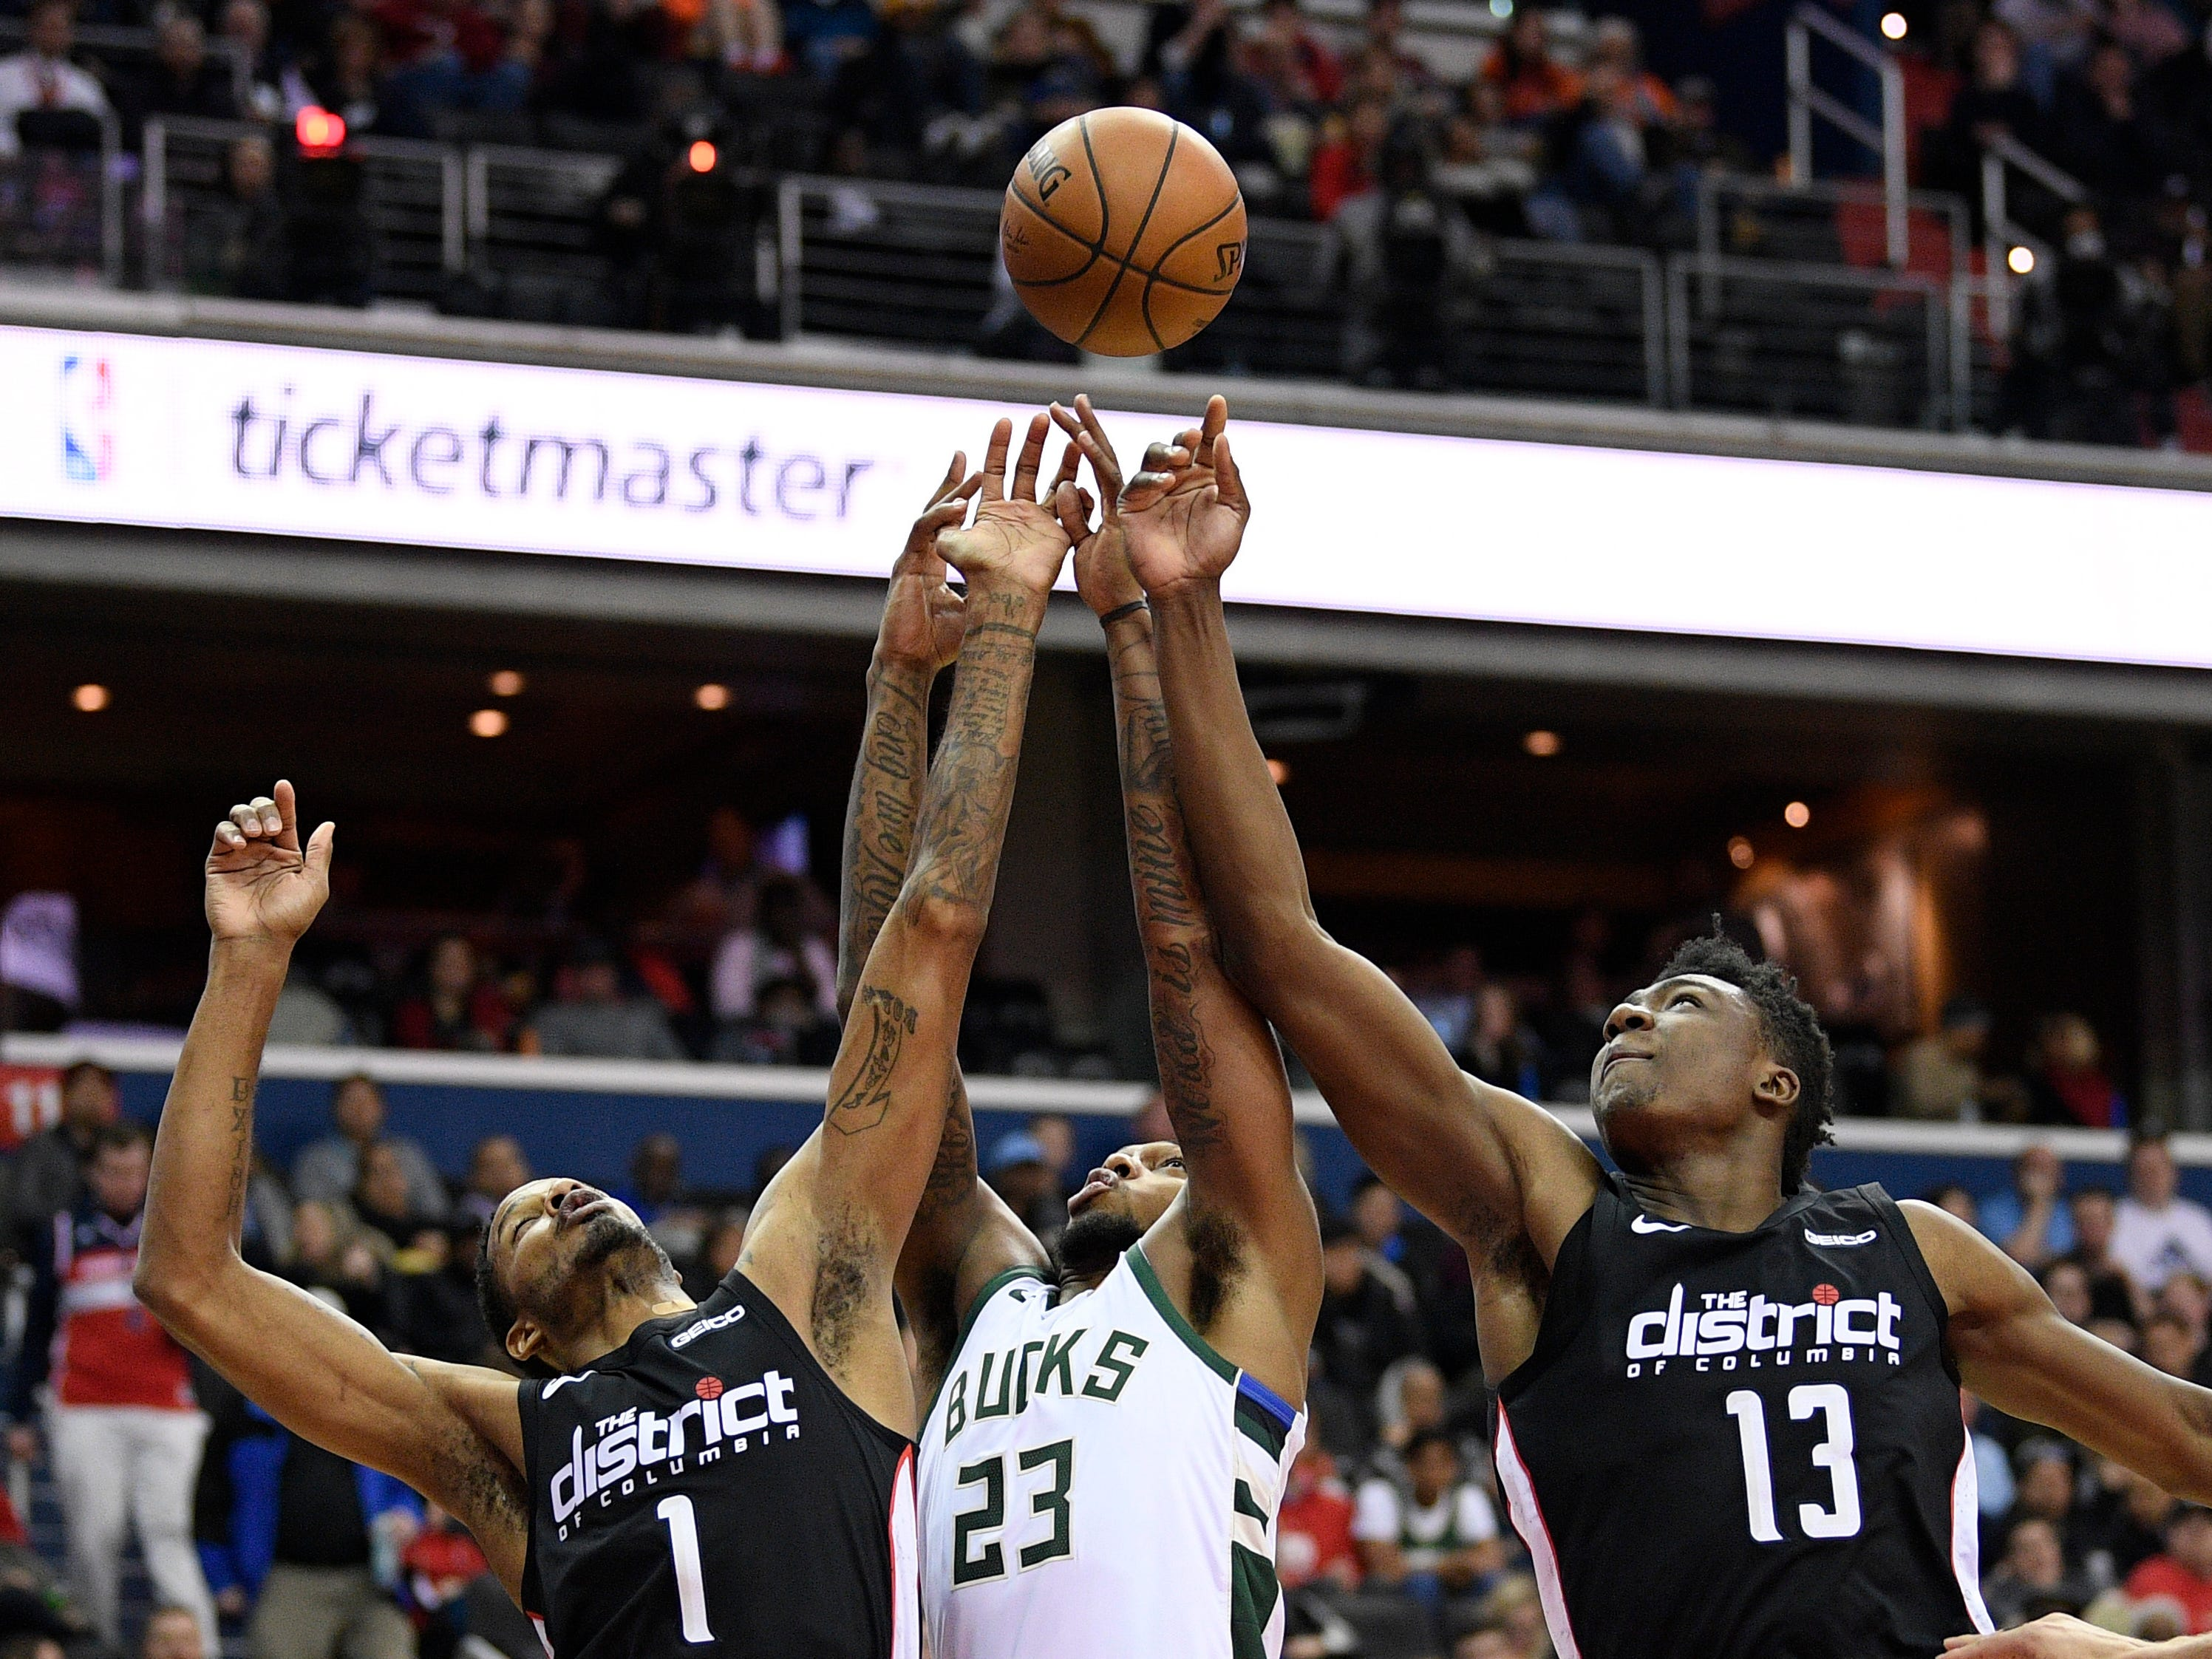 Sterling Brown of the Bucks battles for a rebound with Trevor Ariza (1) and Thomas Bryant of the Wizards on Friday night.